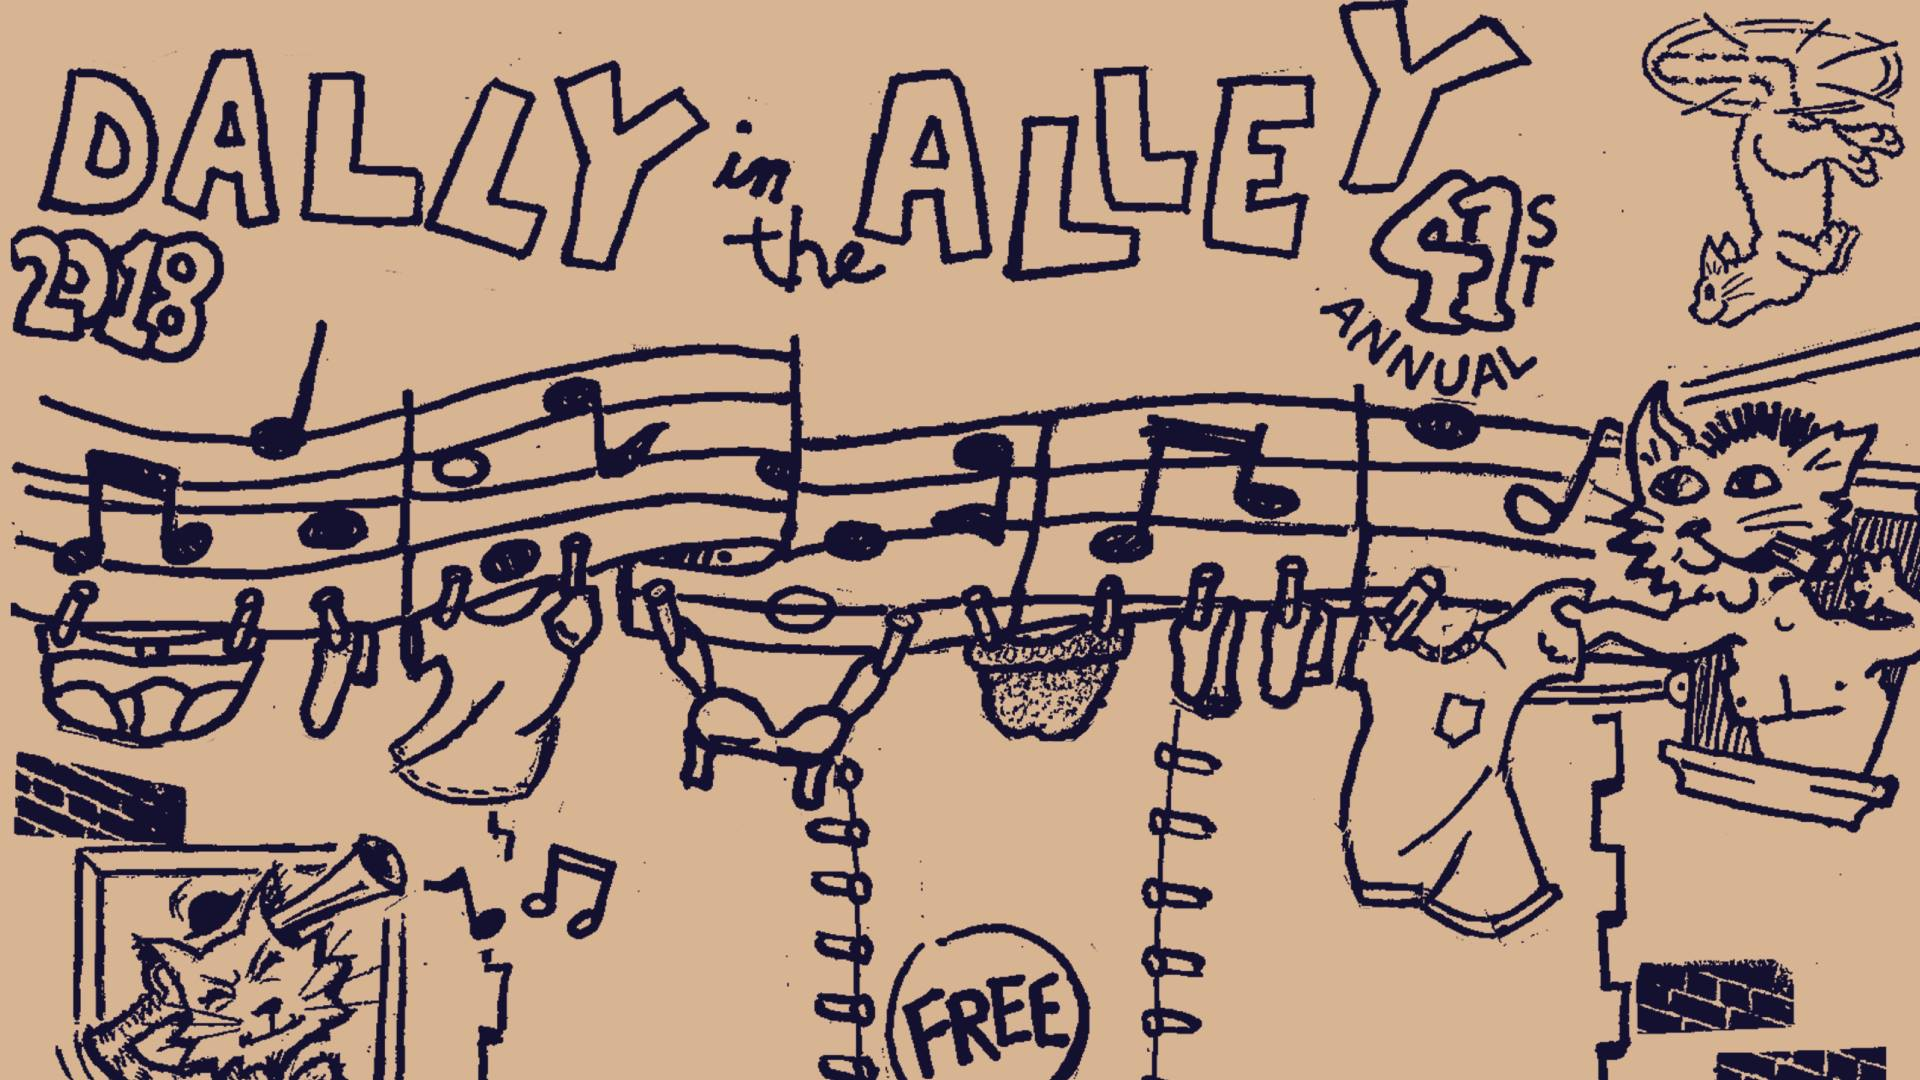 Photo from  Dally in the Alley 2018  on Facebook. Art by Brian Taylor